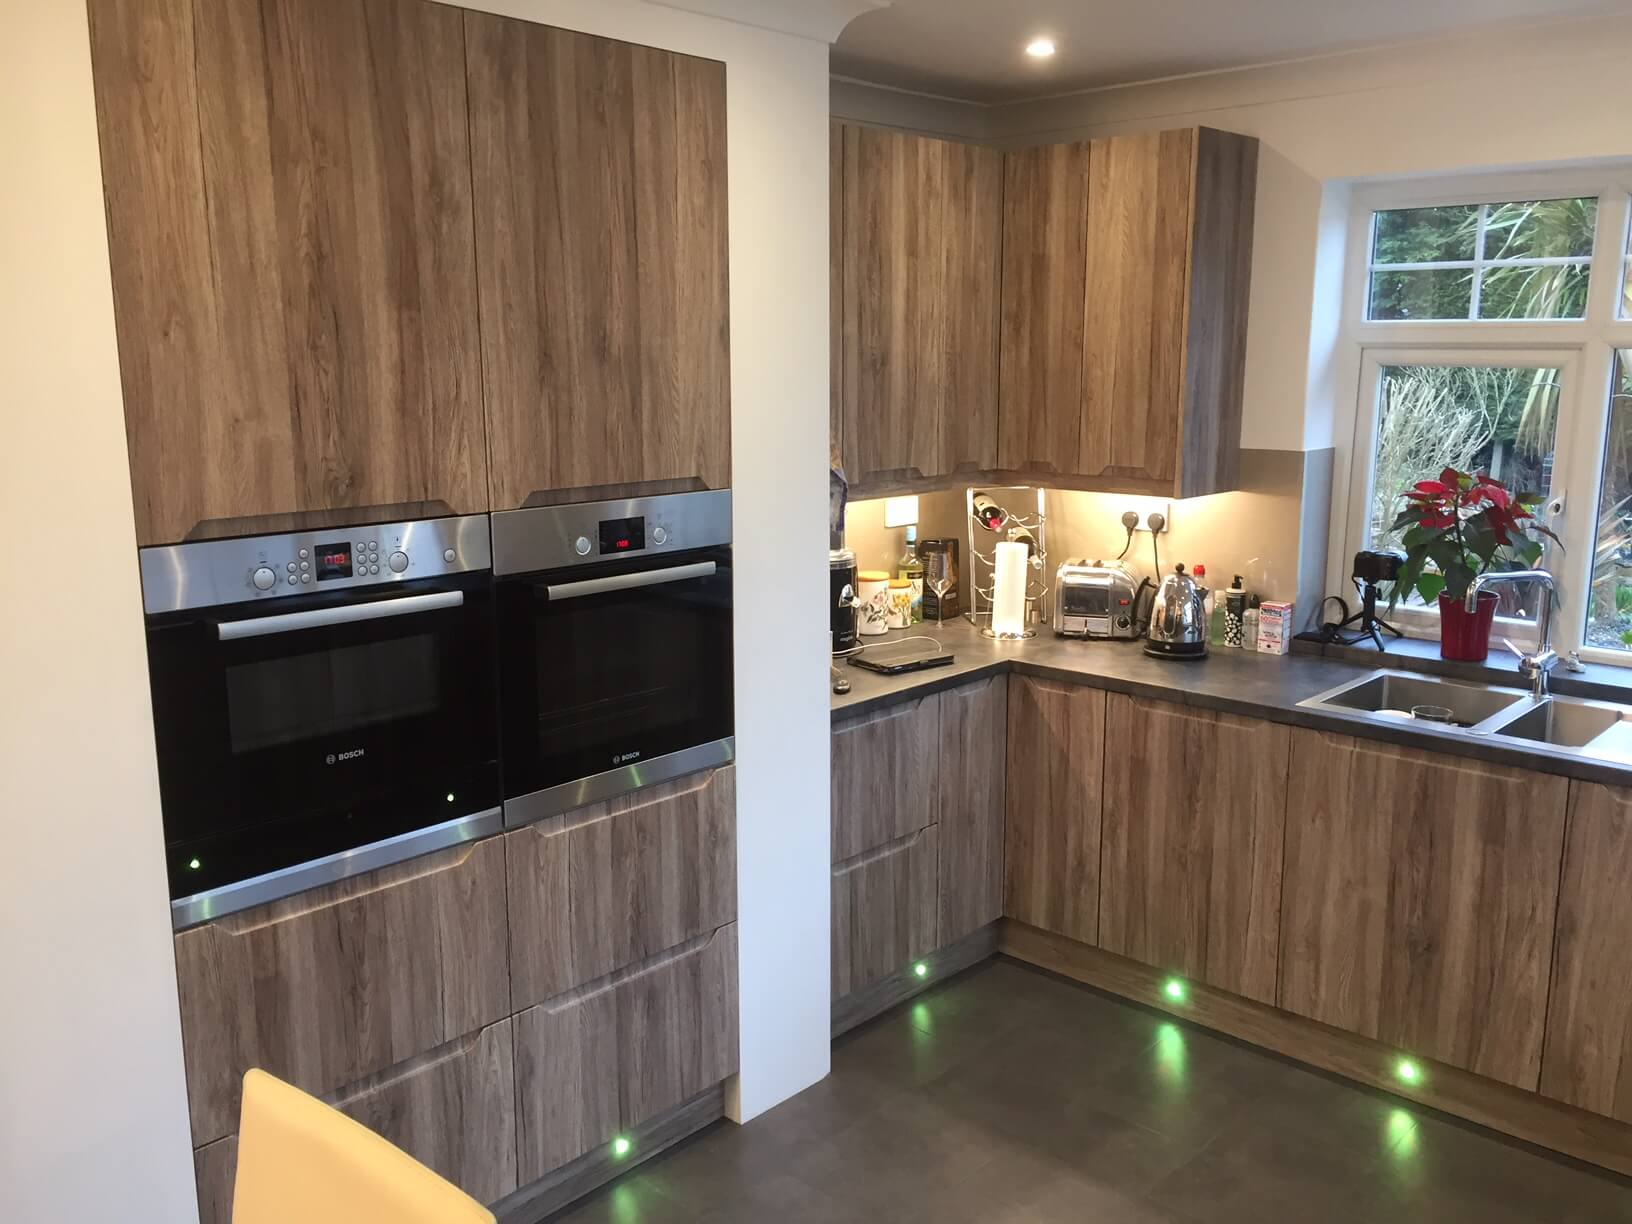 Handless Kitchen With Acrylic Splash Back And Lights Fitted for Mr & Mrs S of Dolton